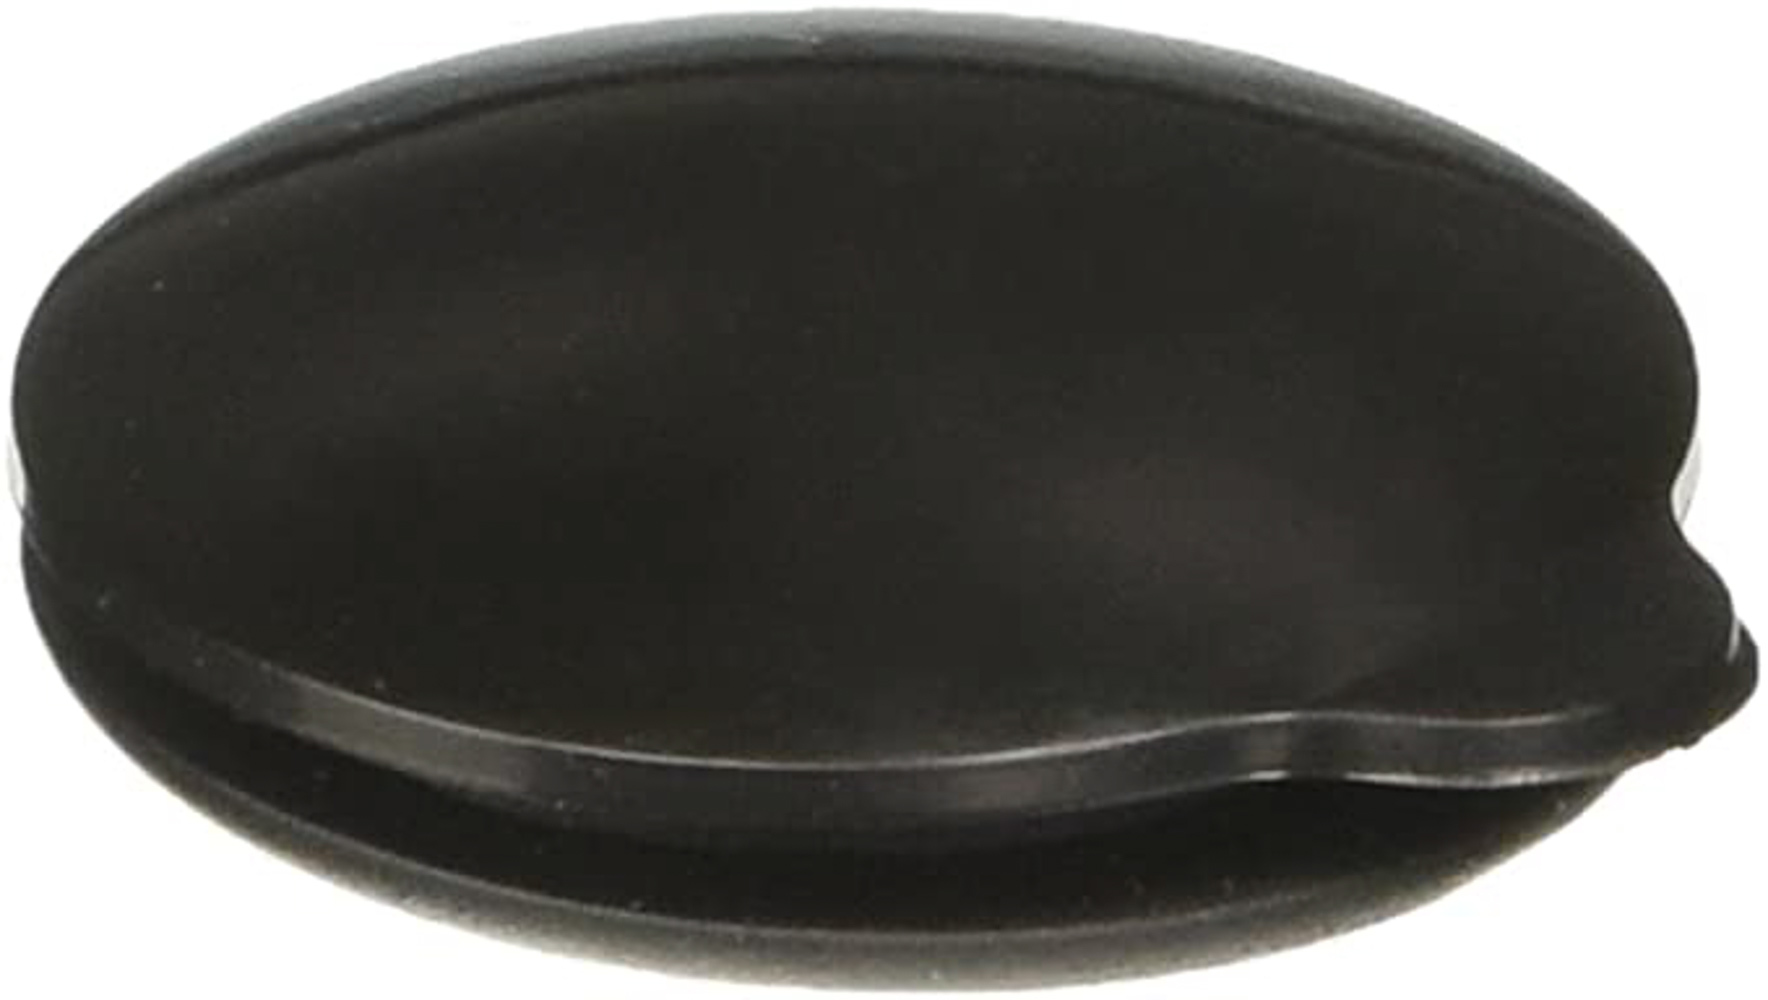 Reese Replacement Part Manual Override Cover for Bulld